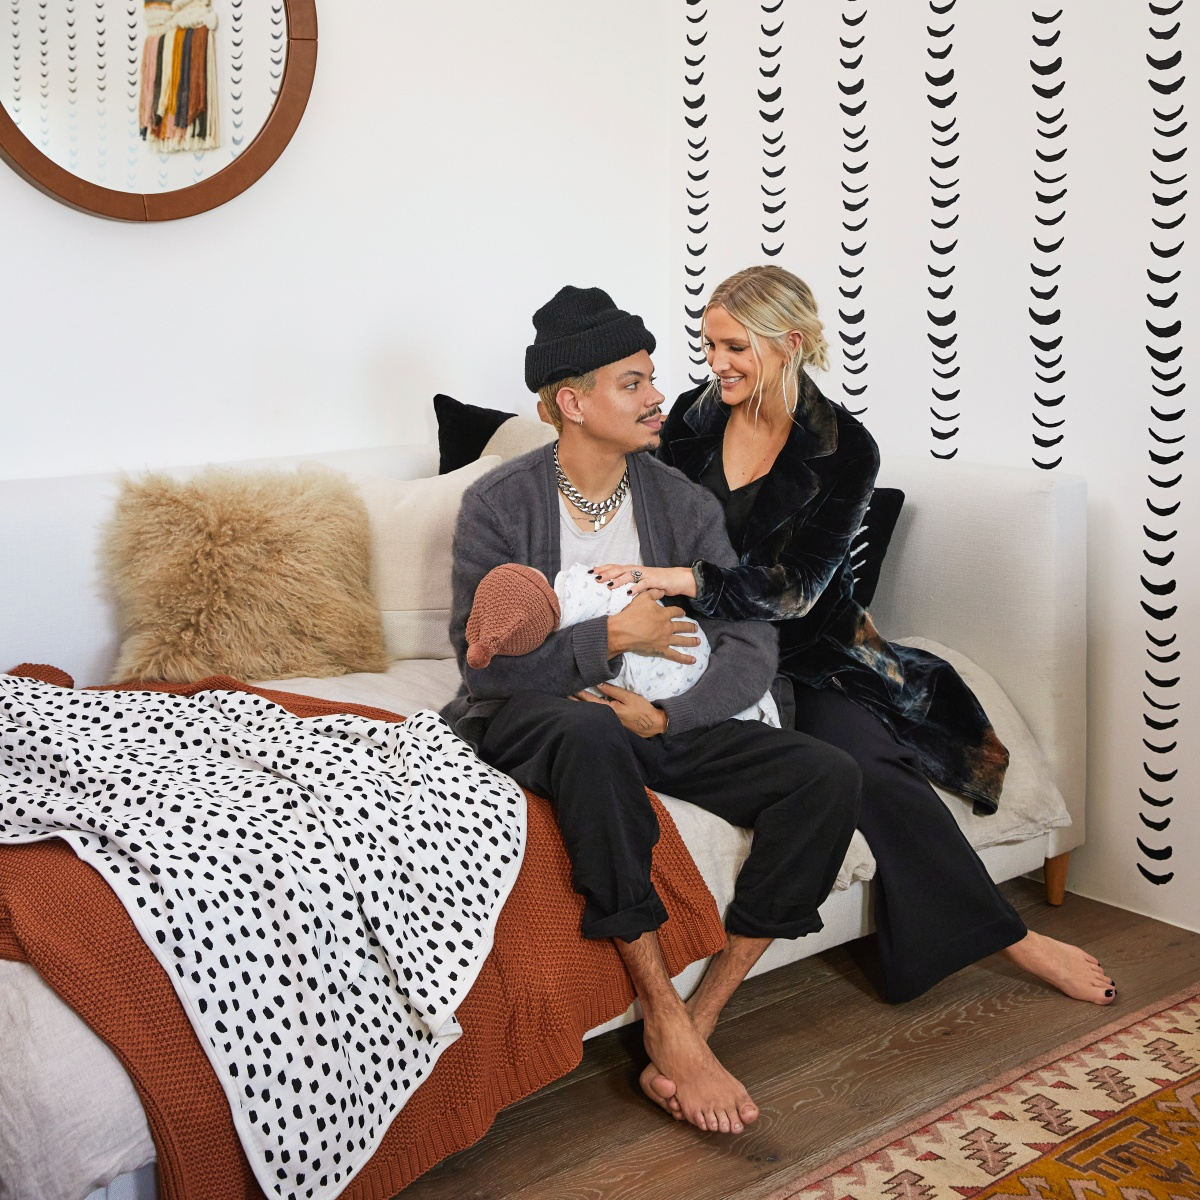 Go Inside Ashlee Simpson Ross and Evan Ross' Bohemian Nursery for Baby Ziggy